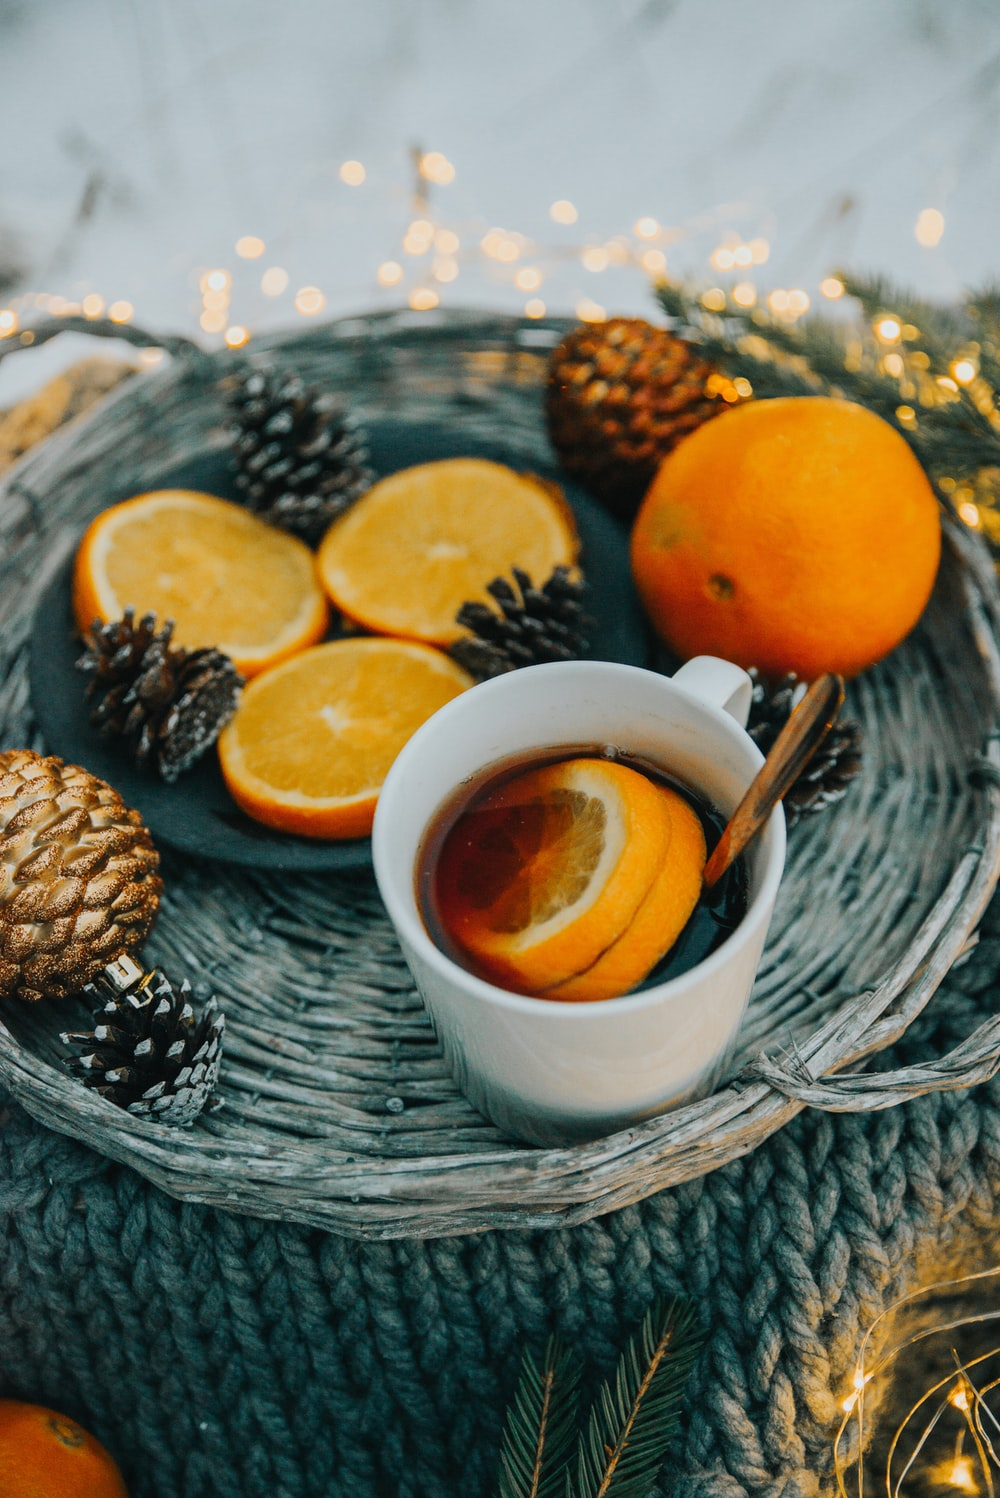 white ceramic mug filled with black liquid and sliced orange fruit on wicker food tray